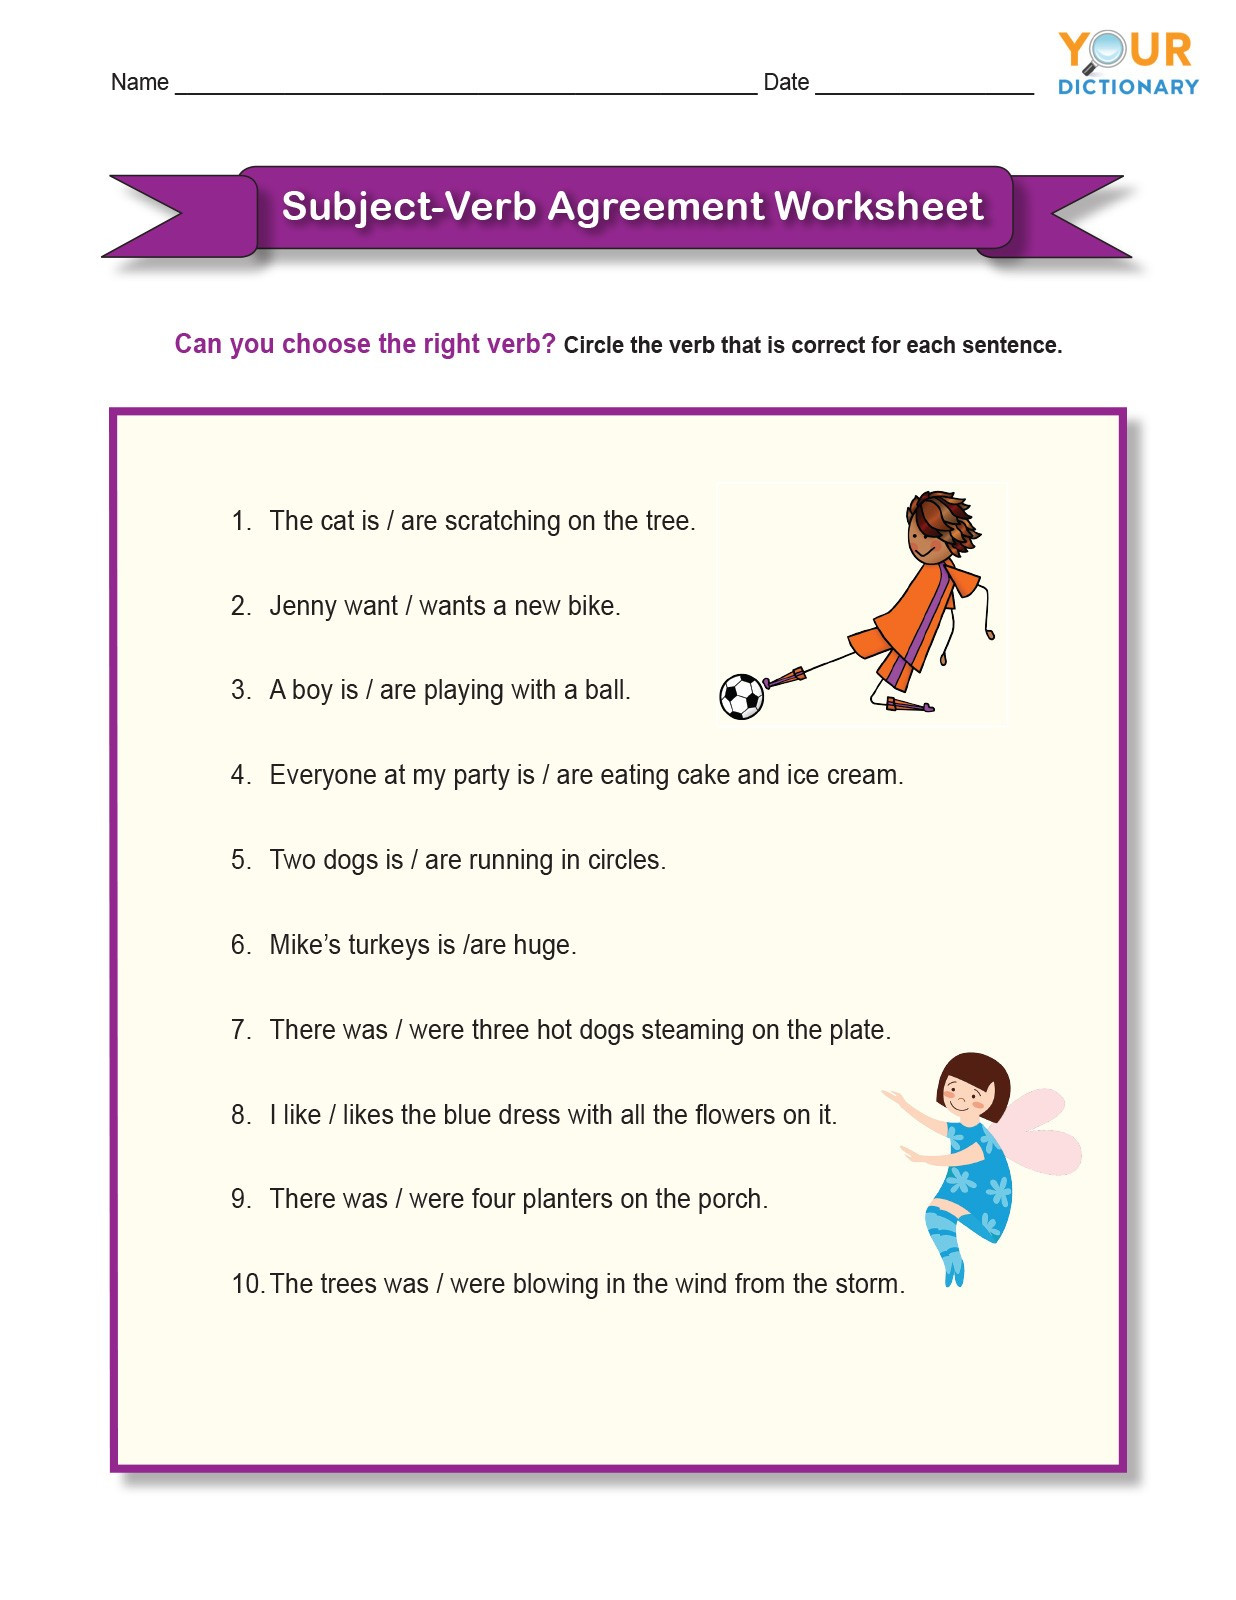 Verbs Worksheets for Middle School Subject Verb Agreement Worksheet